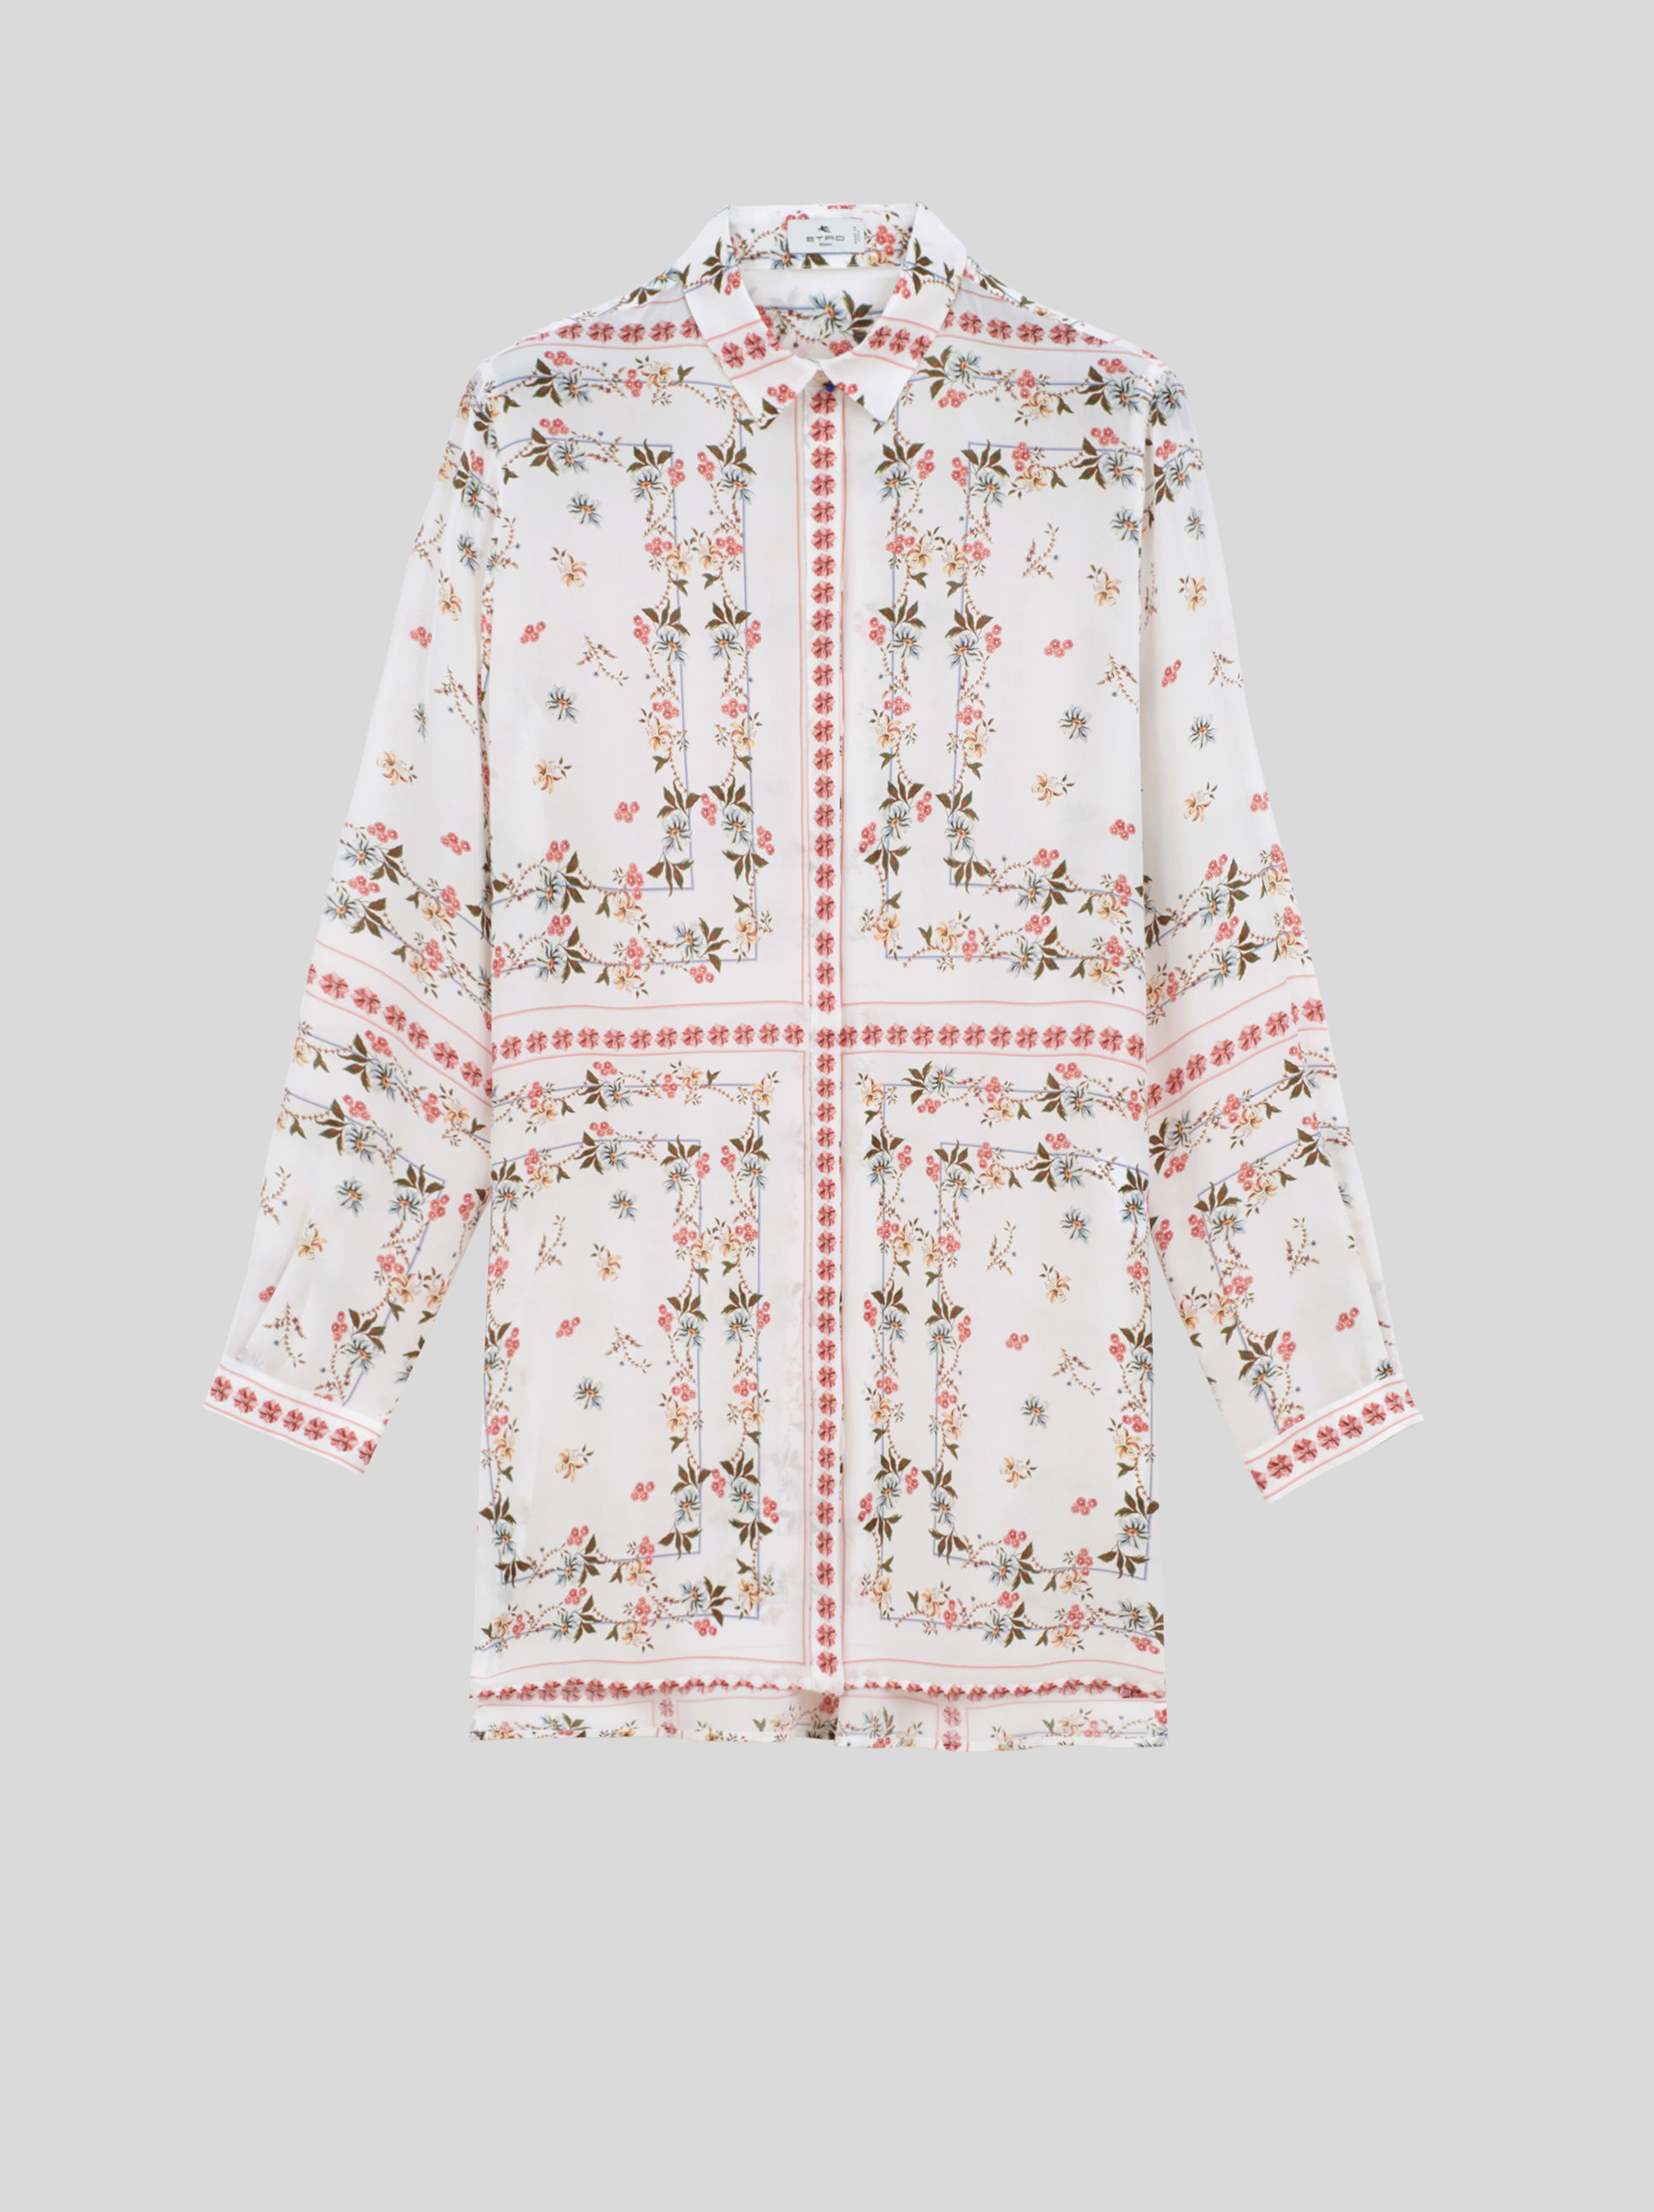 FLOWERED SILK SHIRT